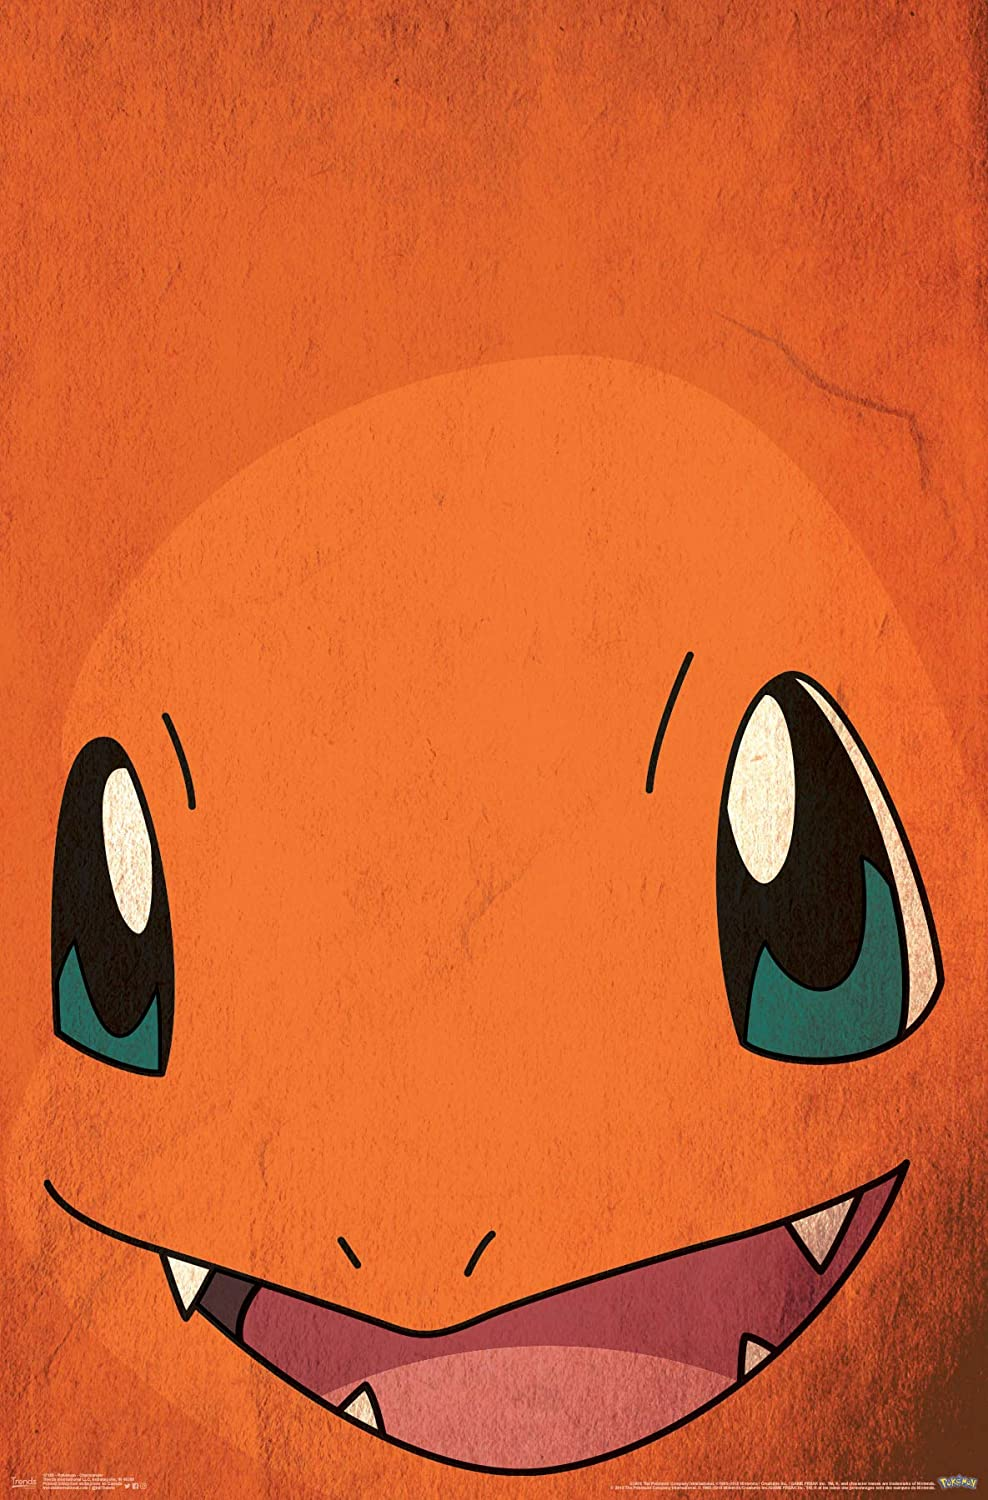 Trends International Pokemon Charmander Wall Poster 24.25 x 35.75 Multi